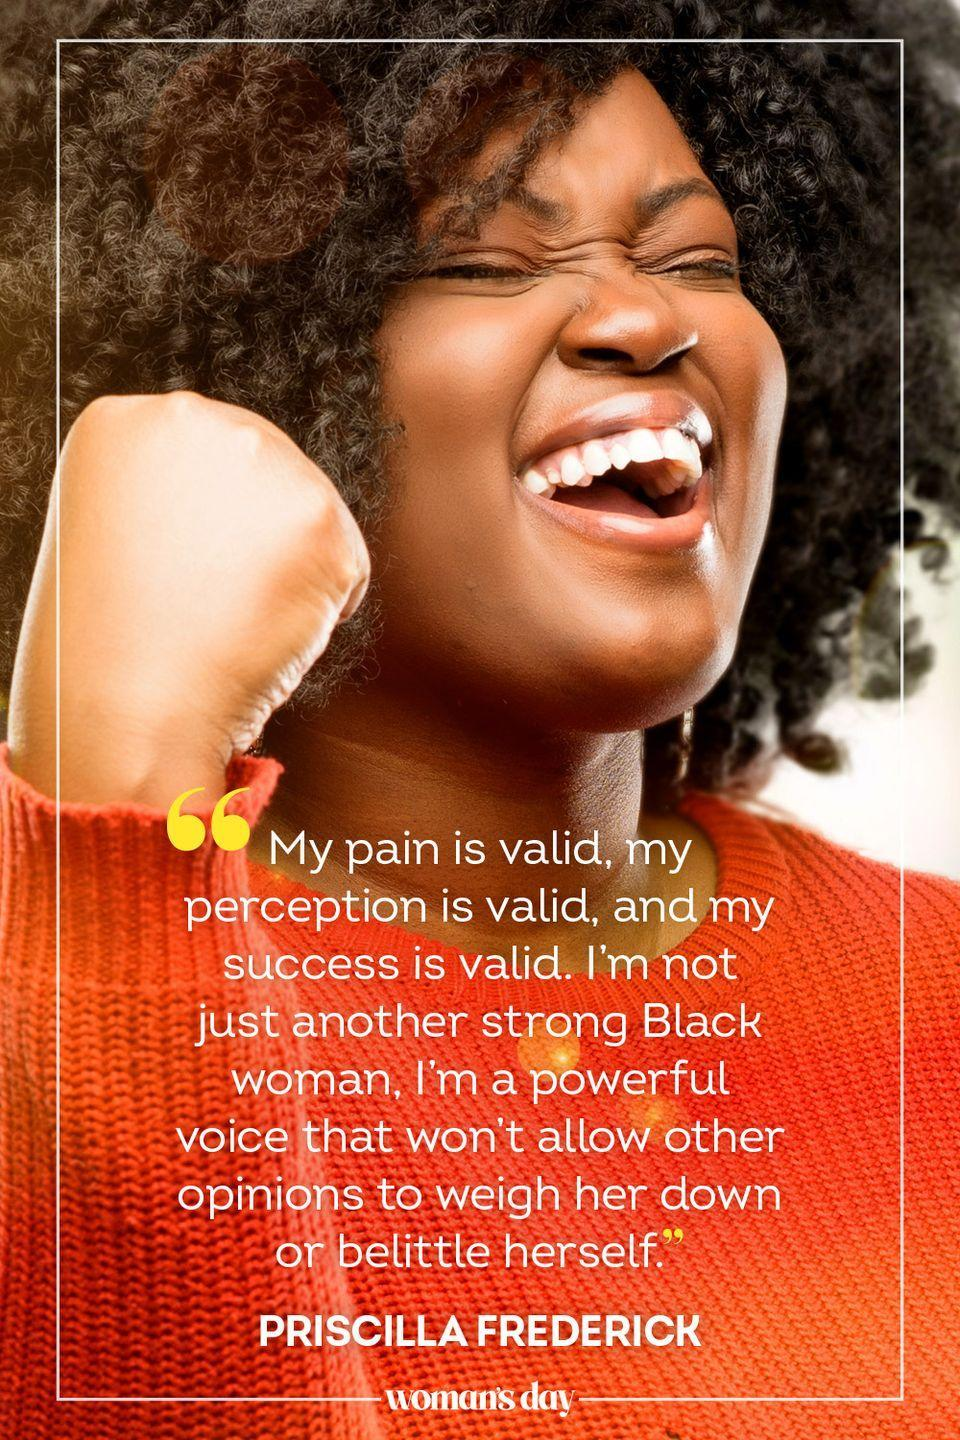 """<p>""""My pain is valid, my perception is valid, and my success is valid. I'm not just another strong Black woman, I'm a powerful voice that won't allow other opinions to weigh her down or belittle herself."""" — Priscilla Frederick</p>"""